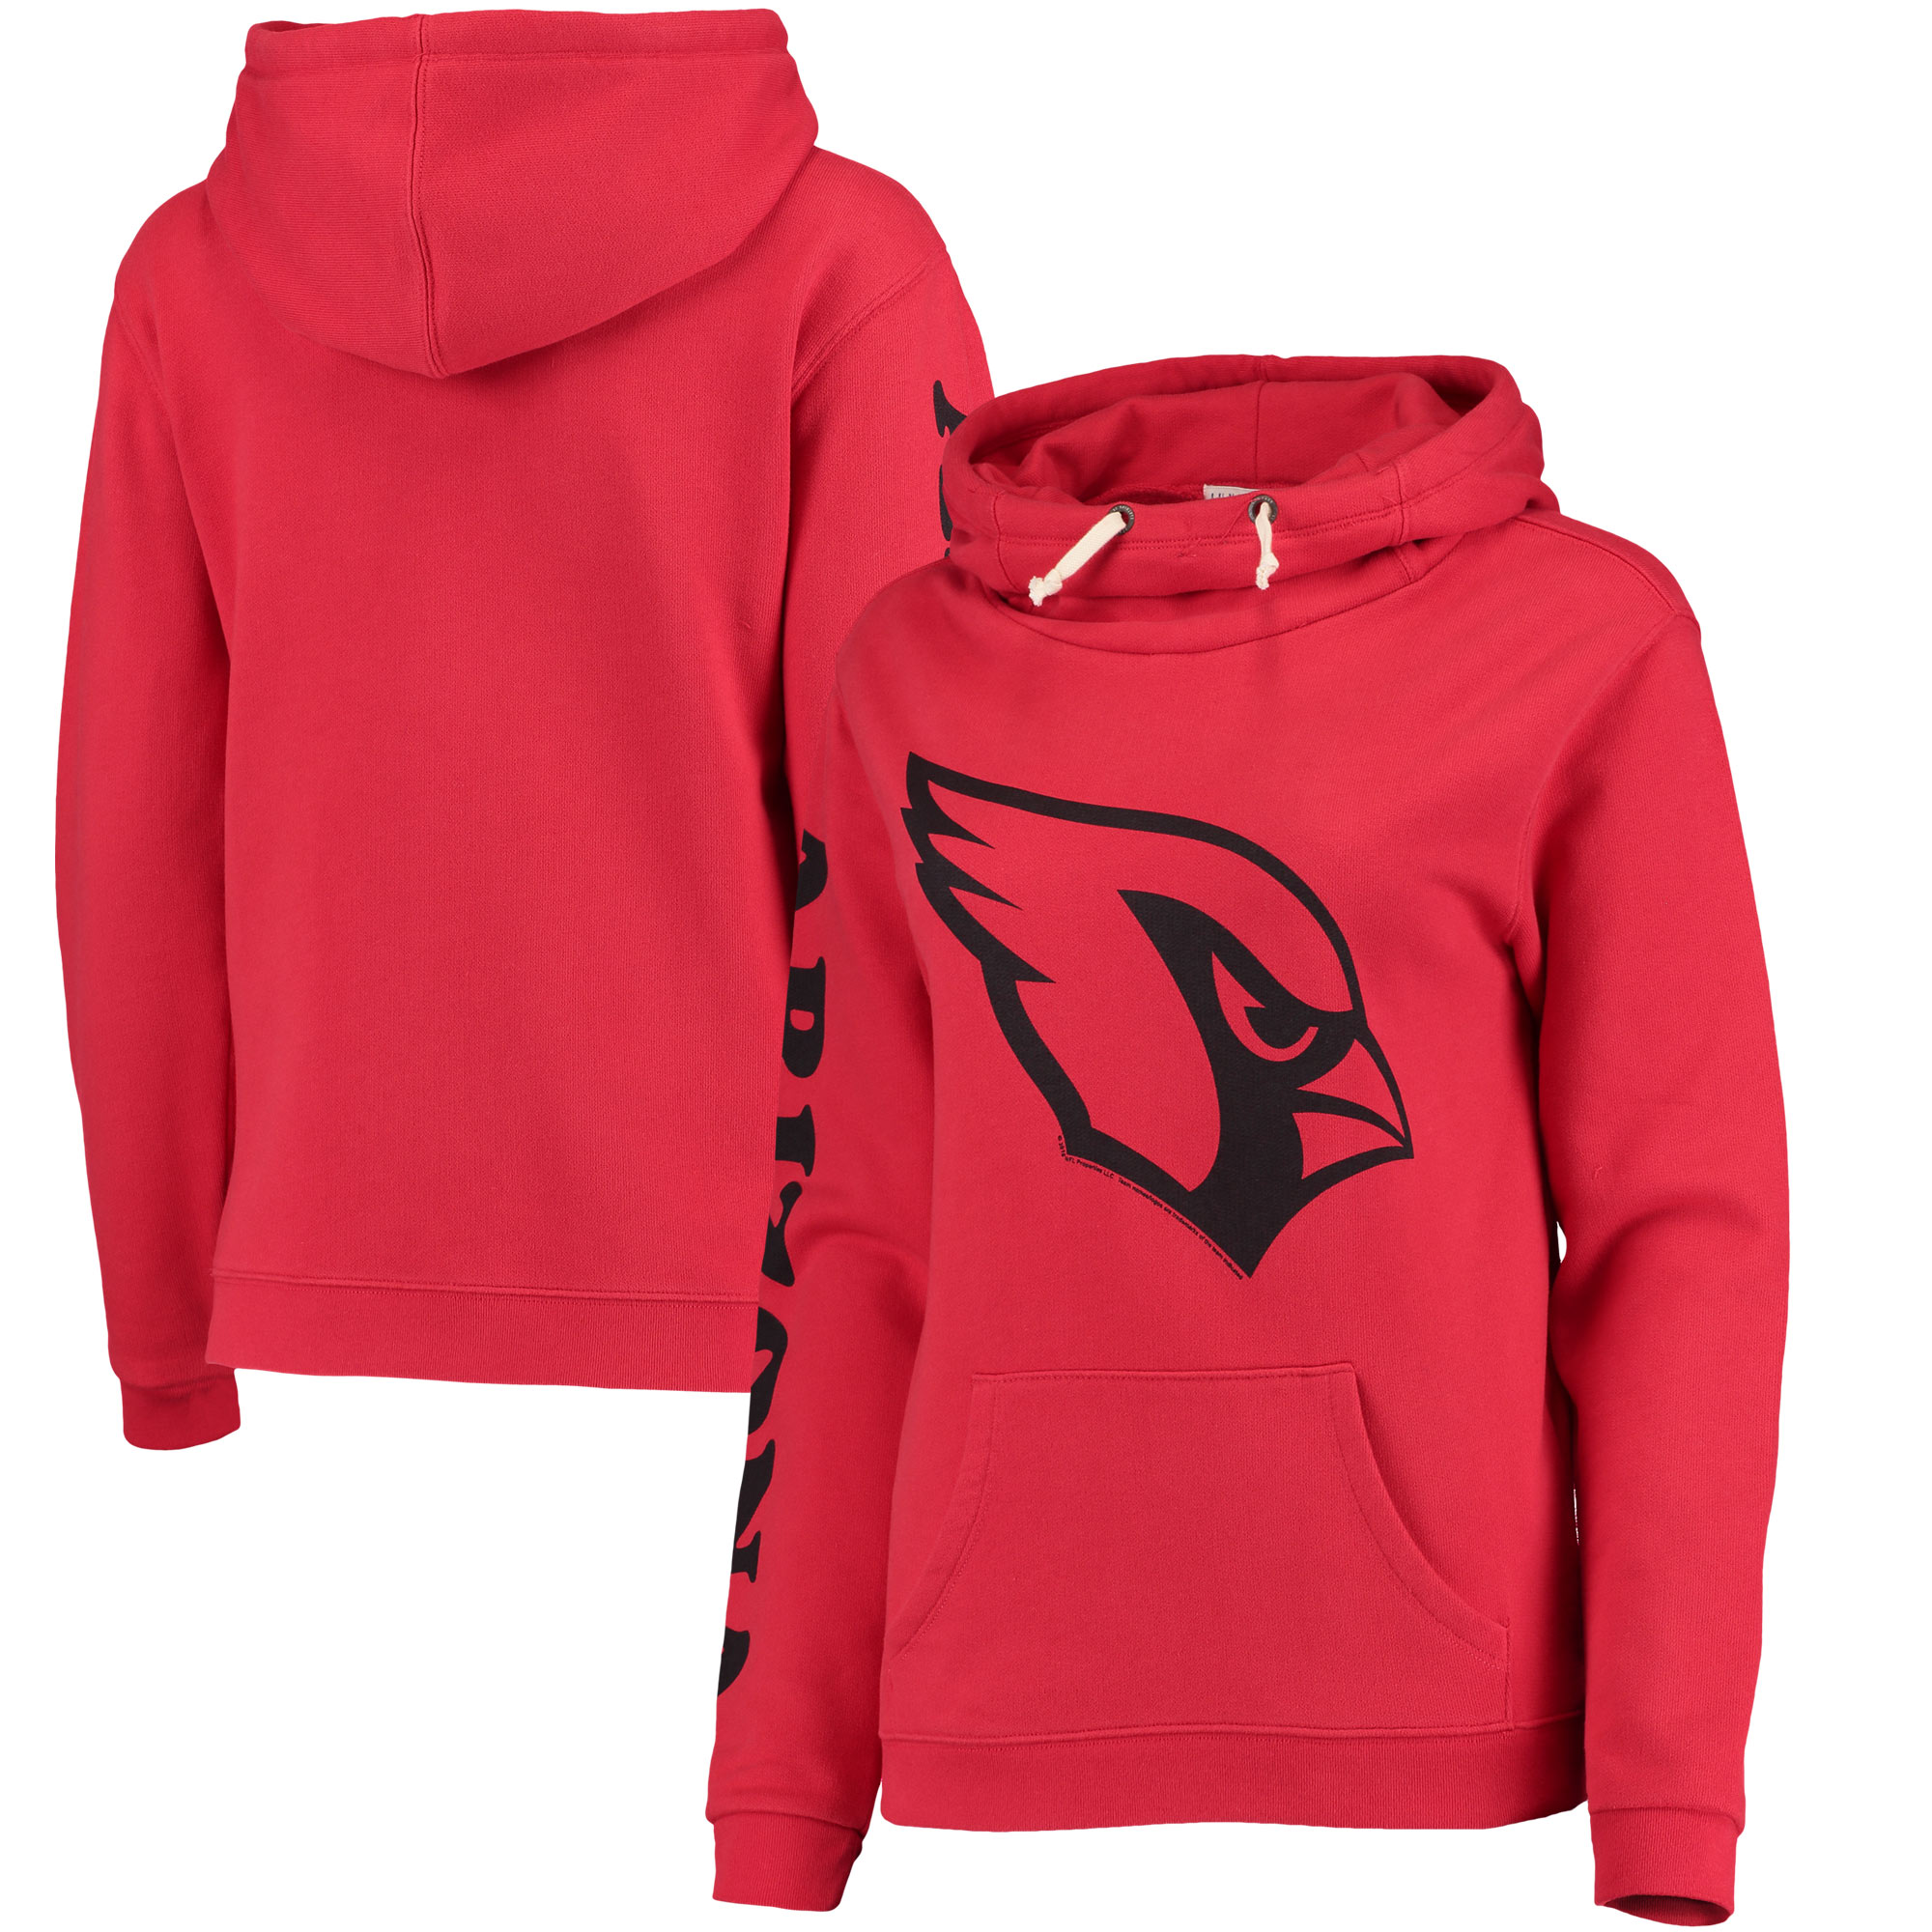 Arizona Cardinals Junk Food Women's Sunday Funnel Neck Pullover Hoodie - Cardinal